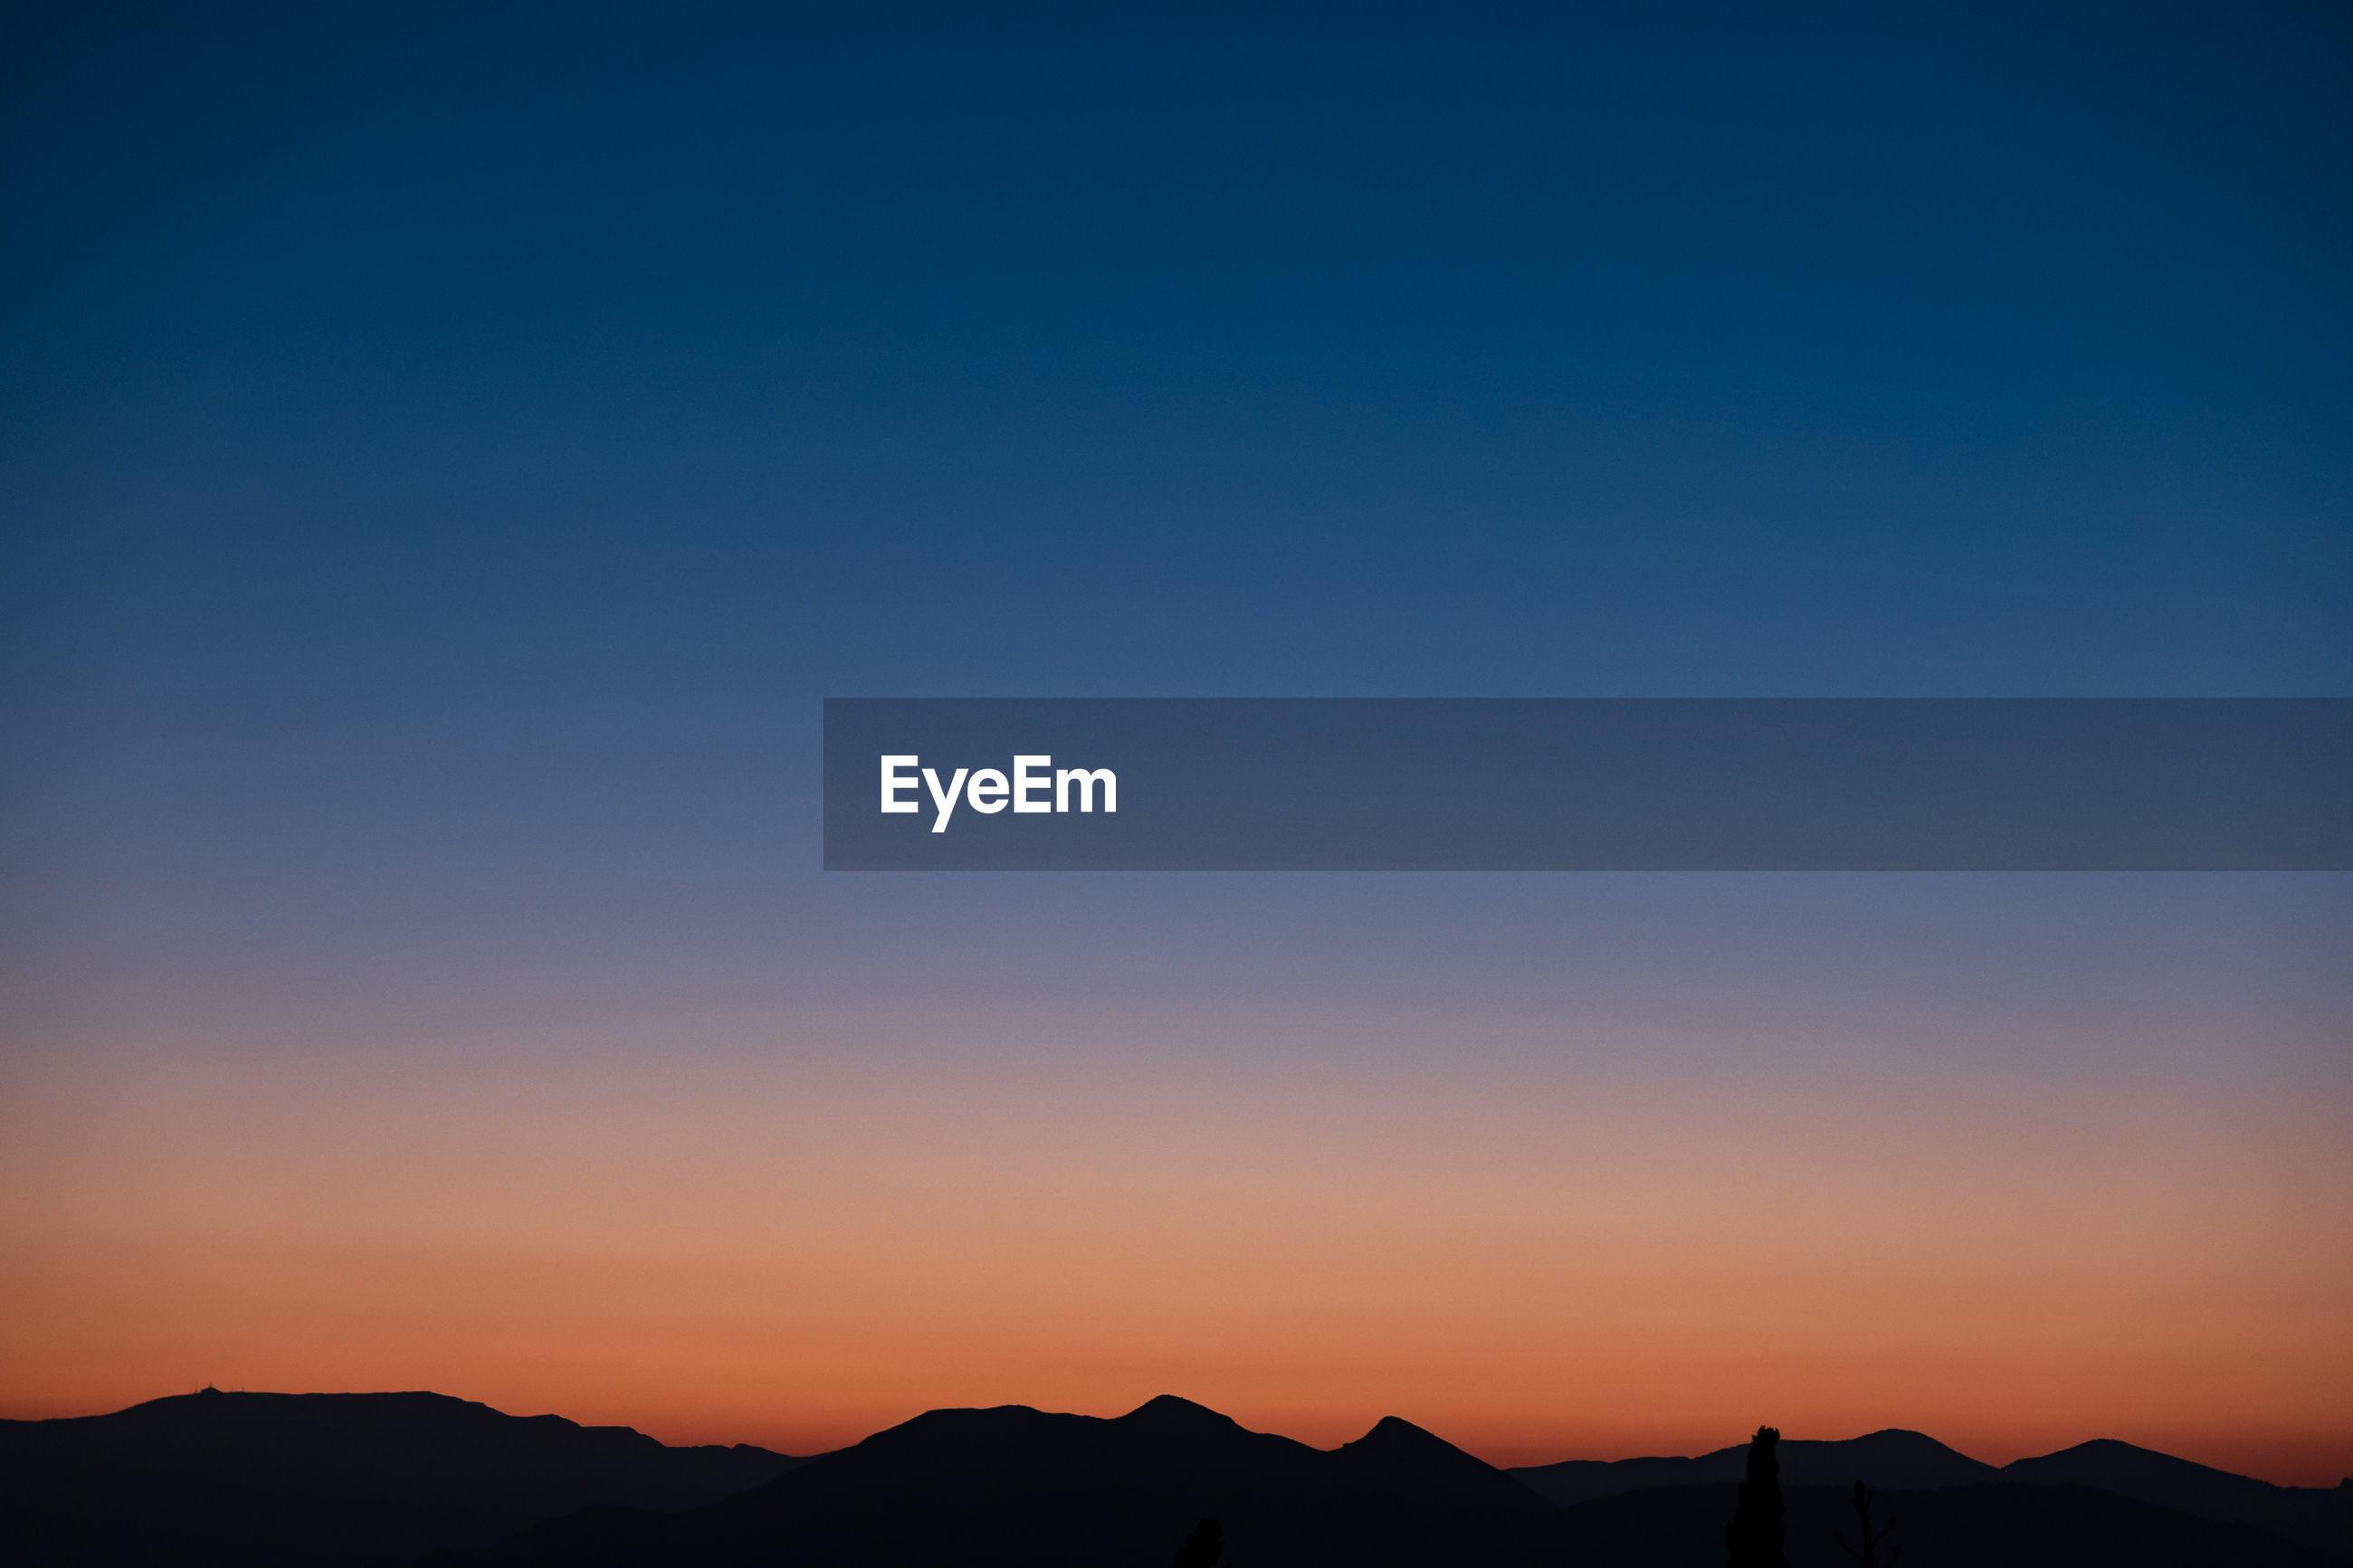 SILHOUETTE MOUNTAIN AGAINST CLEAR SKY AT SUNSET